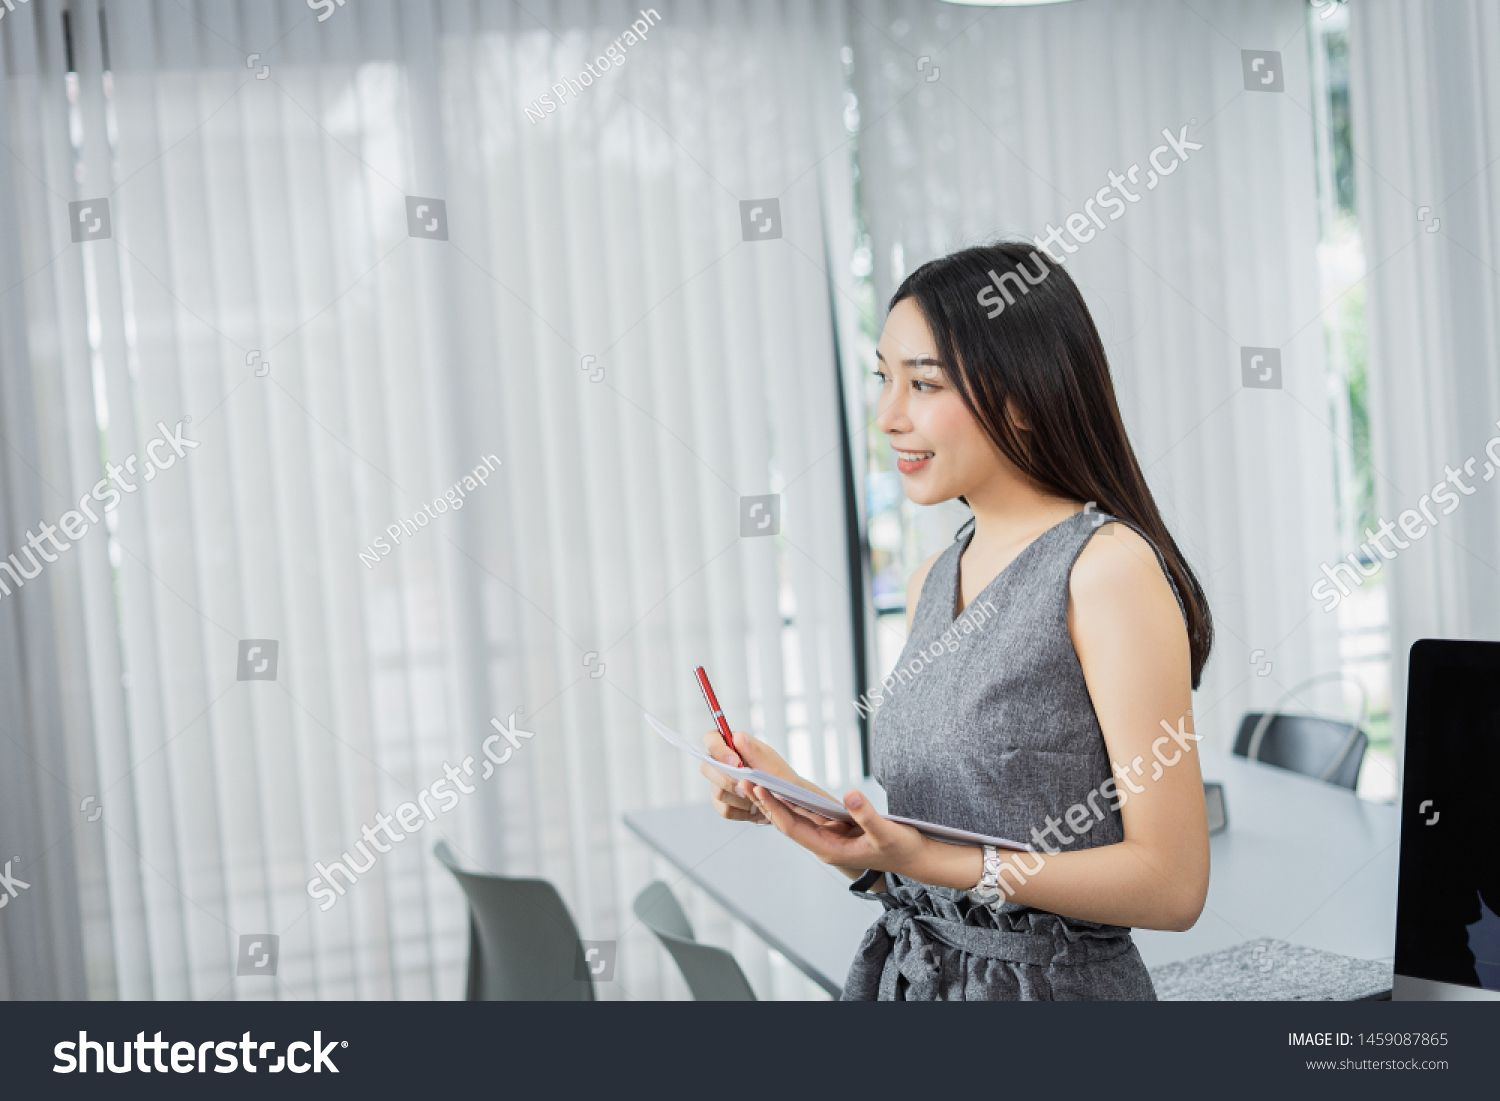 Concentrated young business woman working on her computer in the office.,standing on workplace. #Sponsored , #Affiliate, #business#woman#Concentrated#young